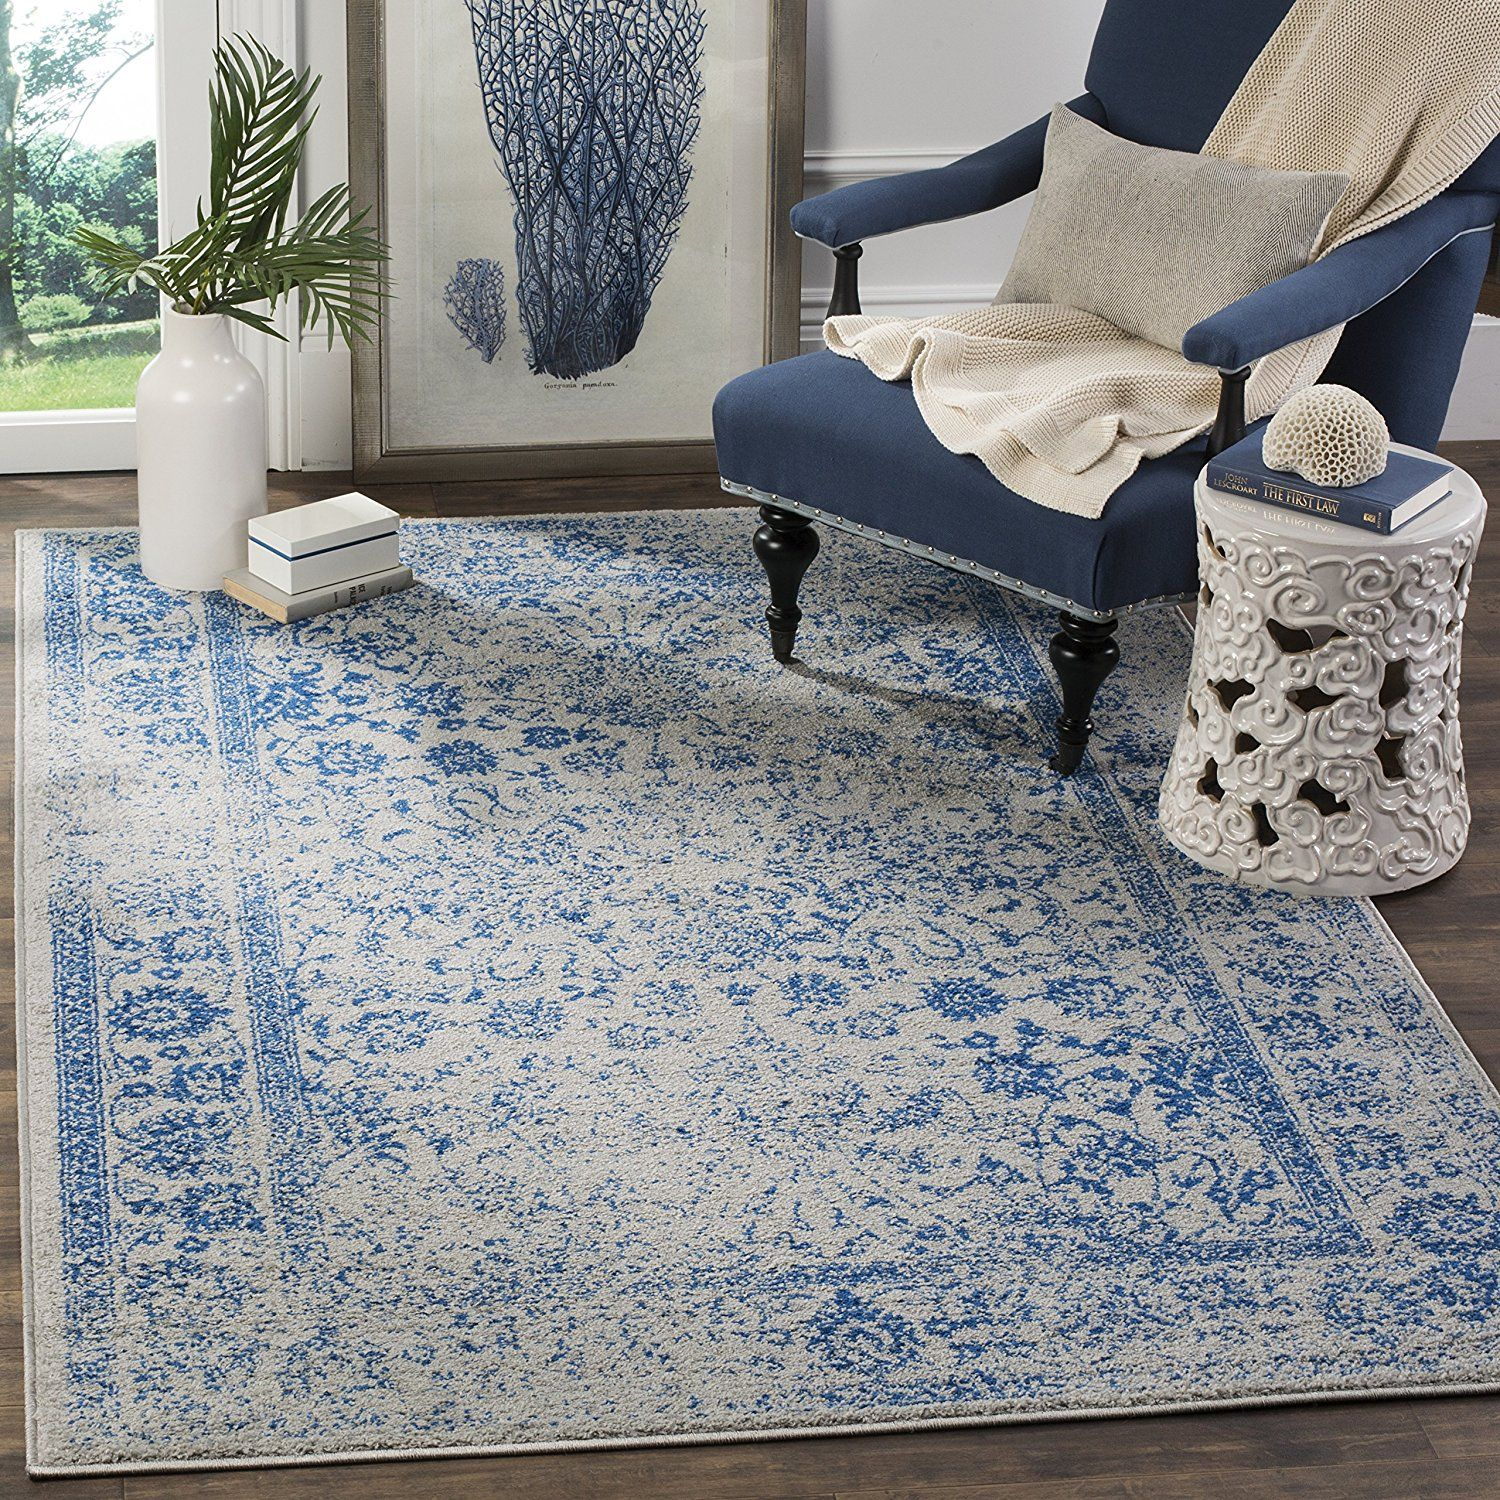 picturesque posh area carpet x priced hall cost at rug zq shag jute idyllic ar outdoor exciting rugs low walmart oval ideas large lowes ing